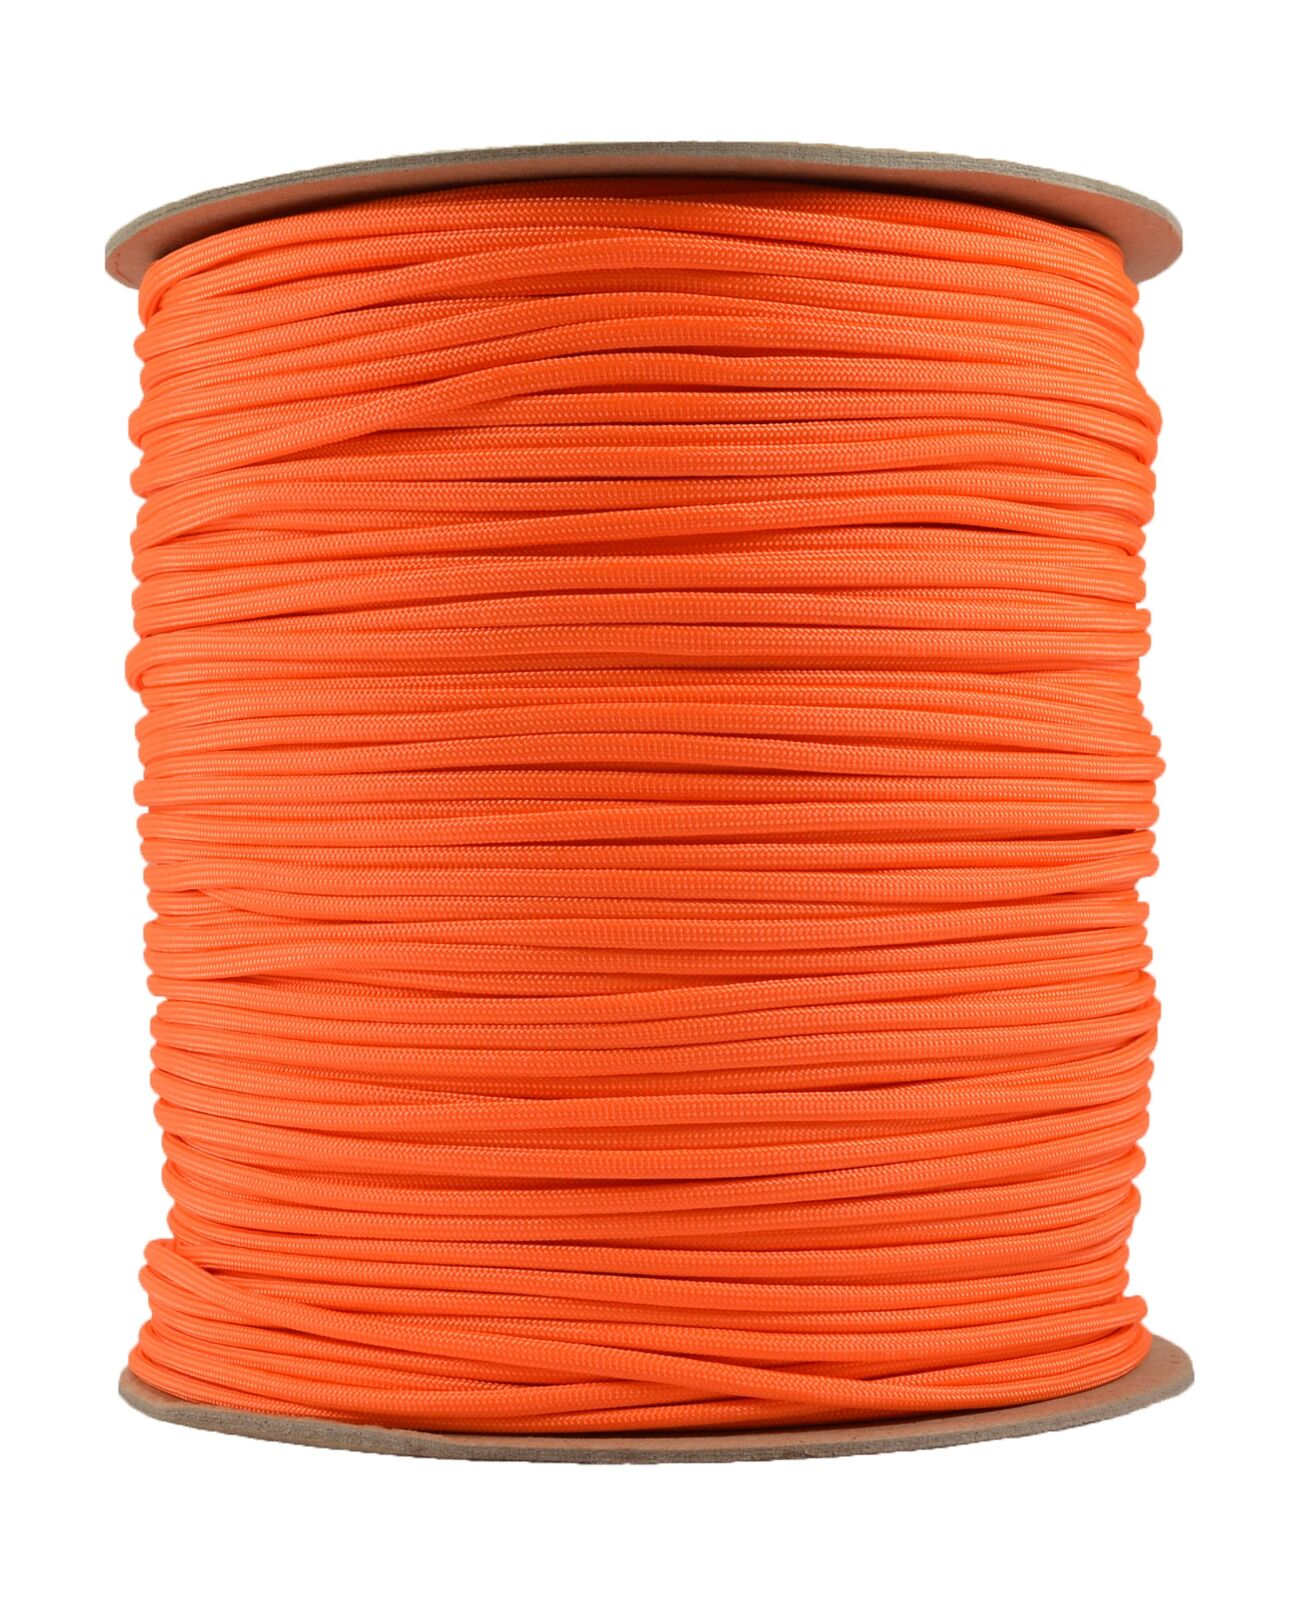 Neon orange - 550 Paracord Rope 7 strand Parachute Cord - 1000 Foot Spool